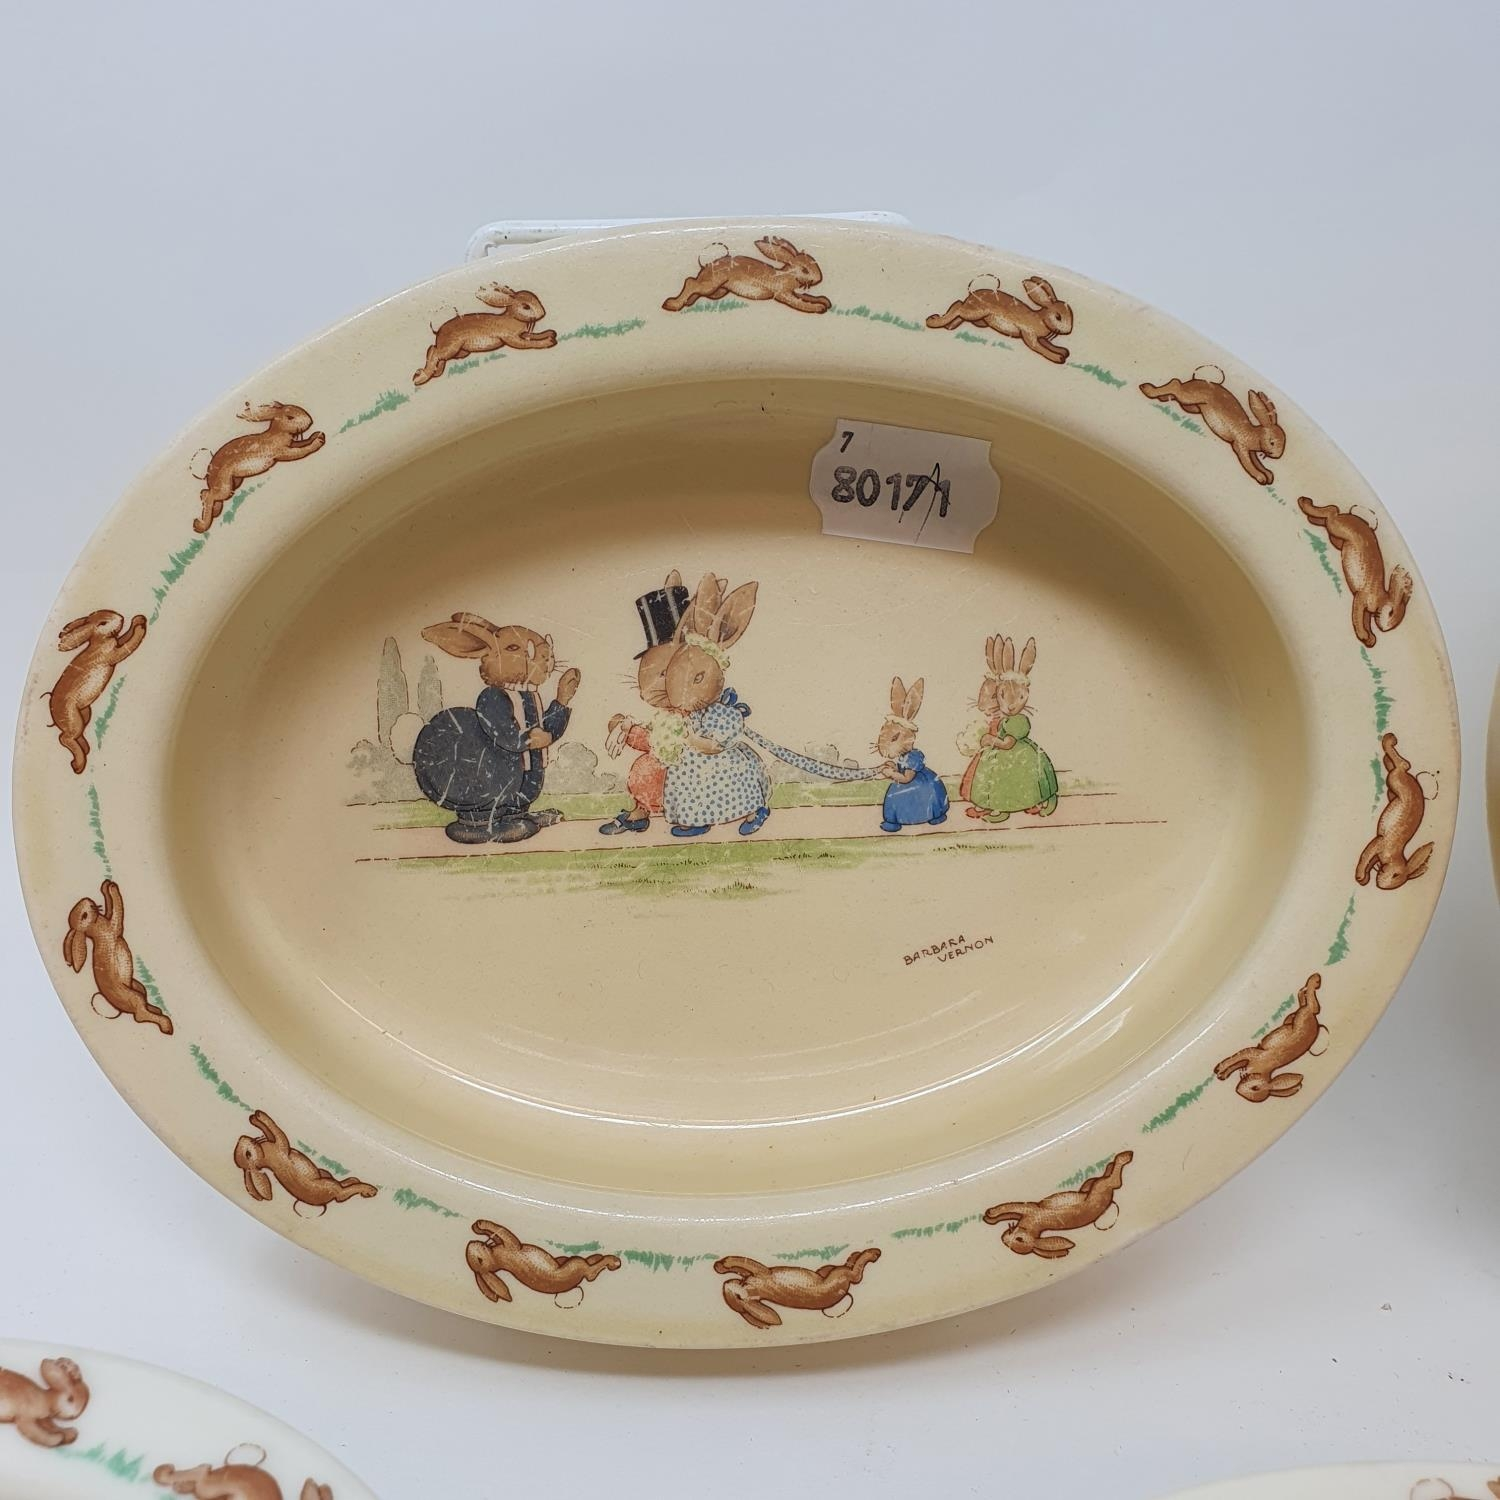 Two Royal Doulton Bunnykins baby's plates by Barbara Vernon, and other Bunnykins china (8) - Image 3 of 4